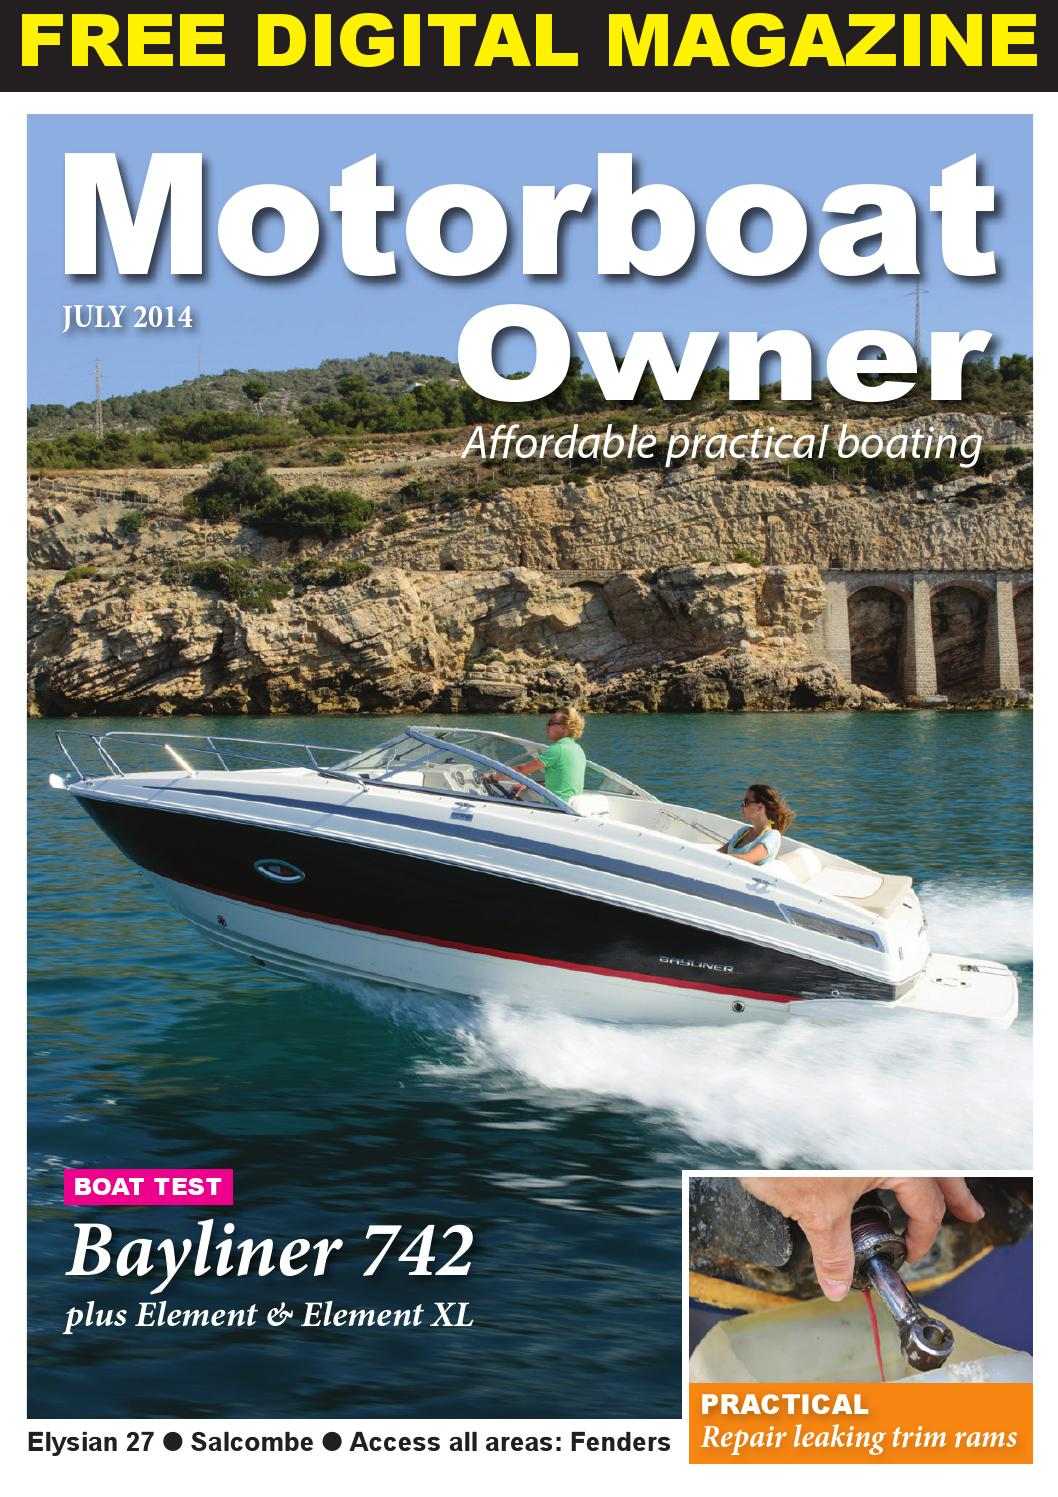 Motorboat Owner July 14 by Digital Marine Media Ltd - issuu